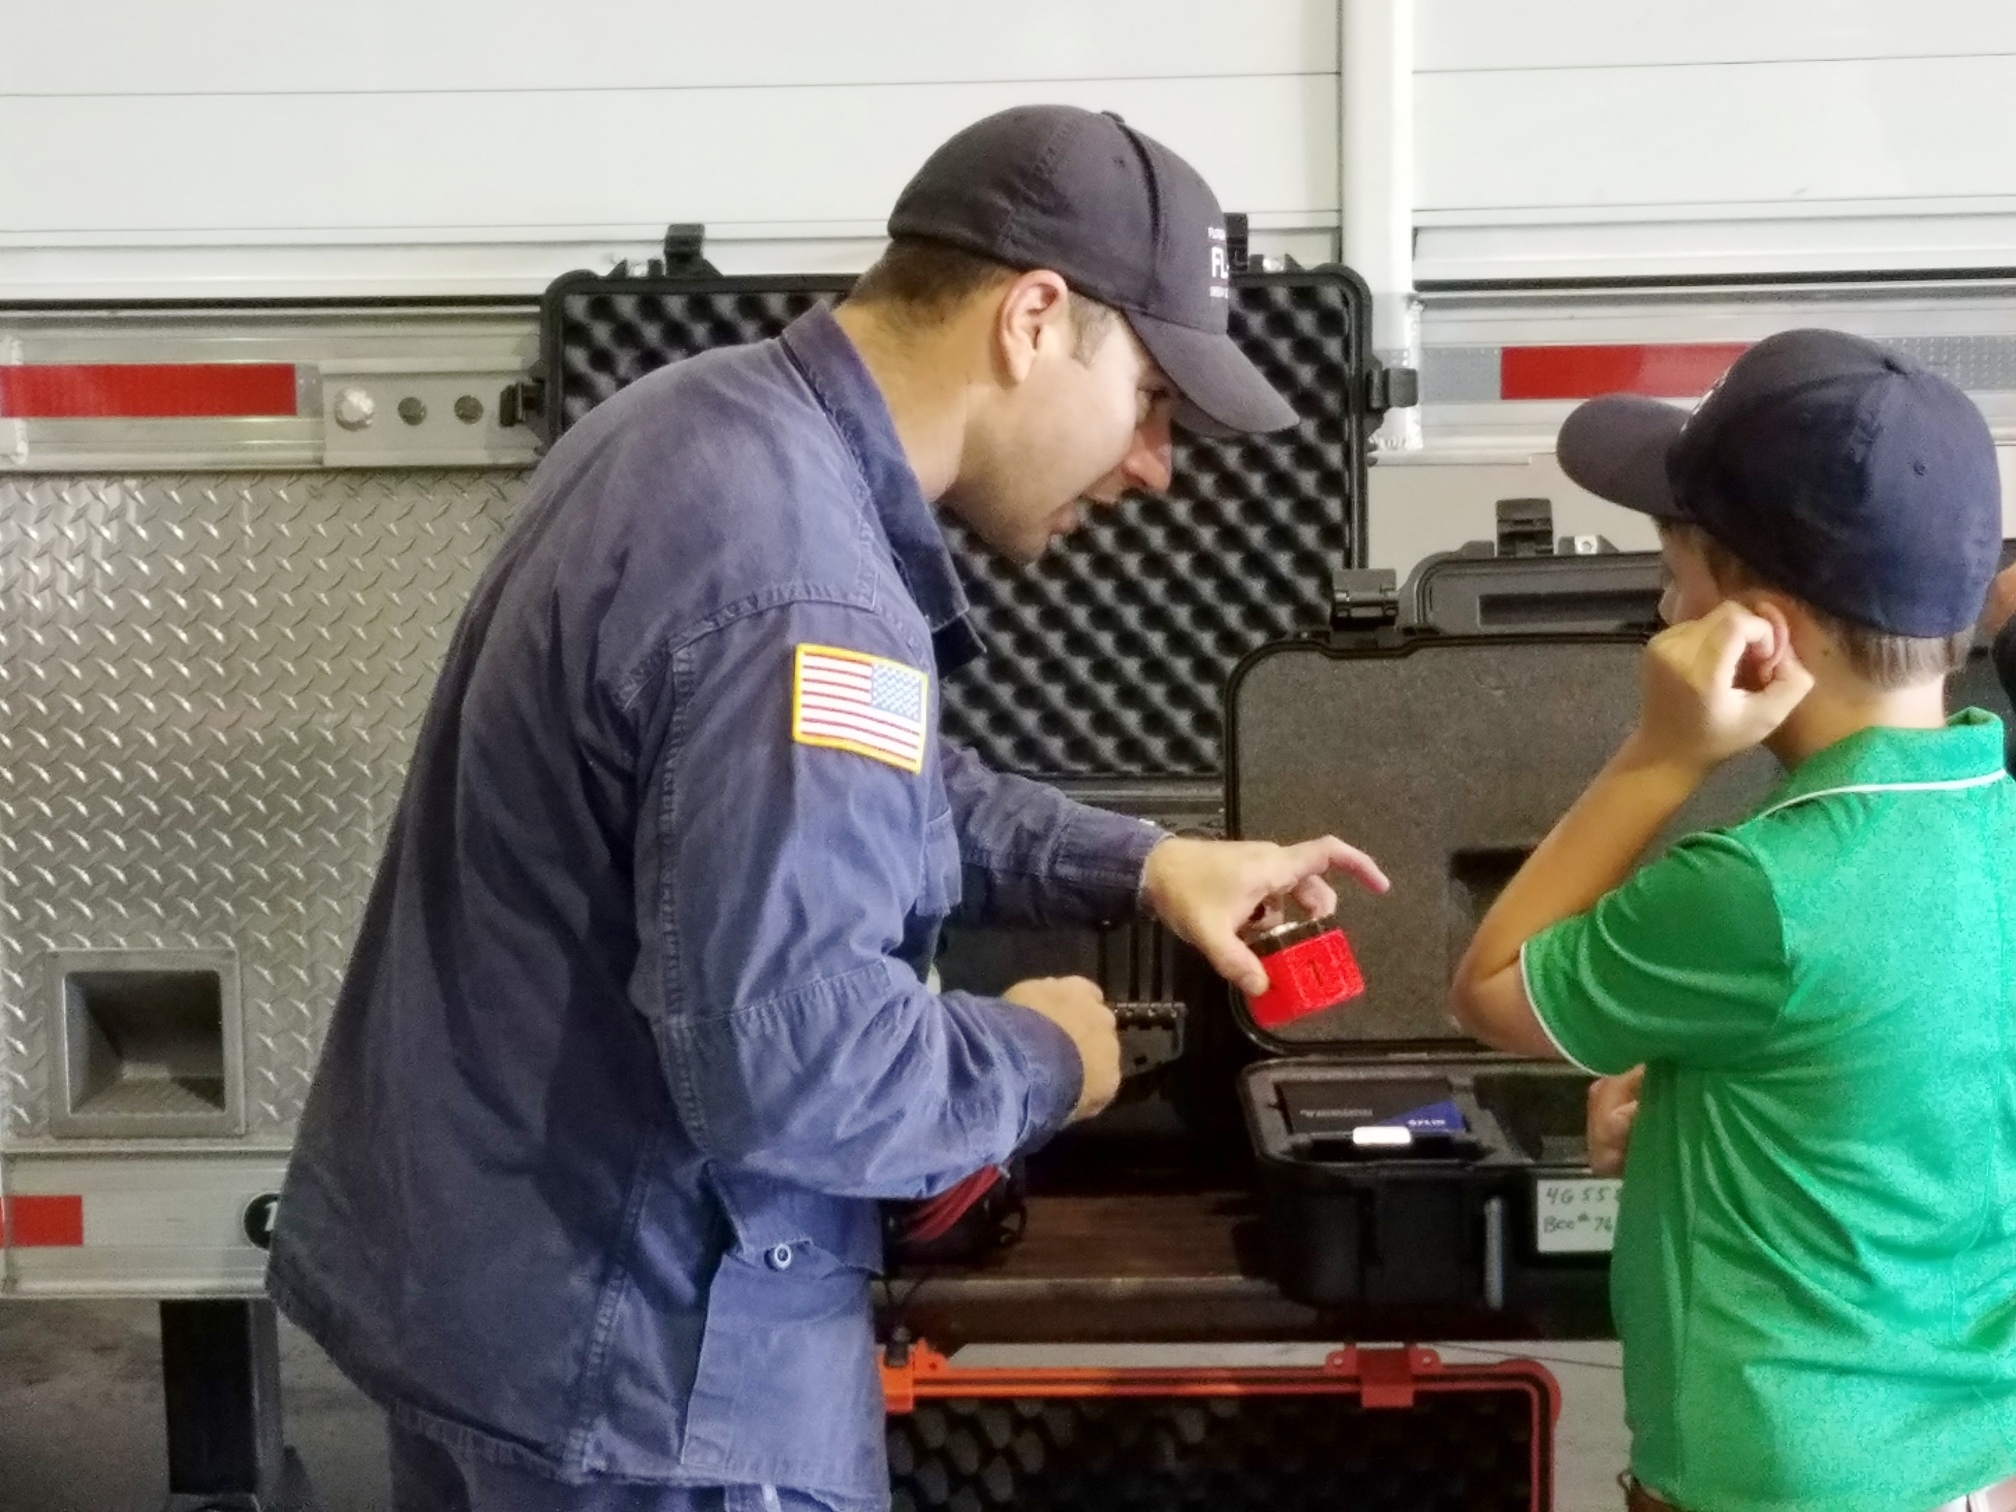 Firefighter speaking with a young boy about the equipment the firefighters use